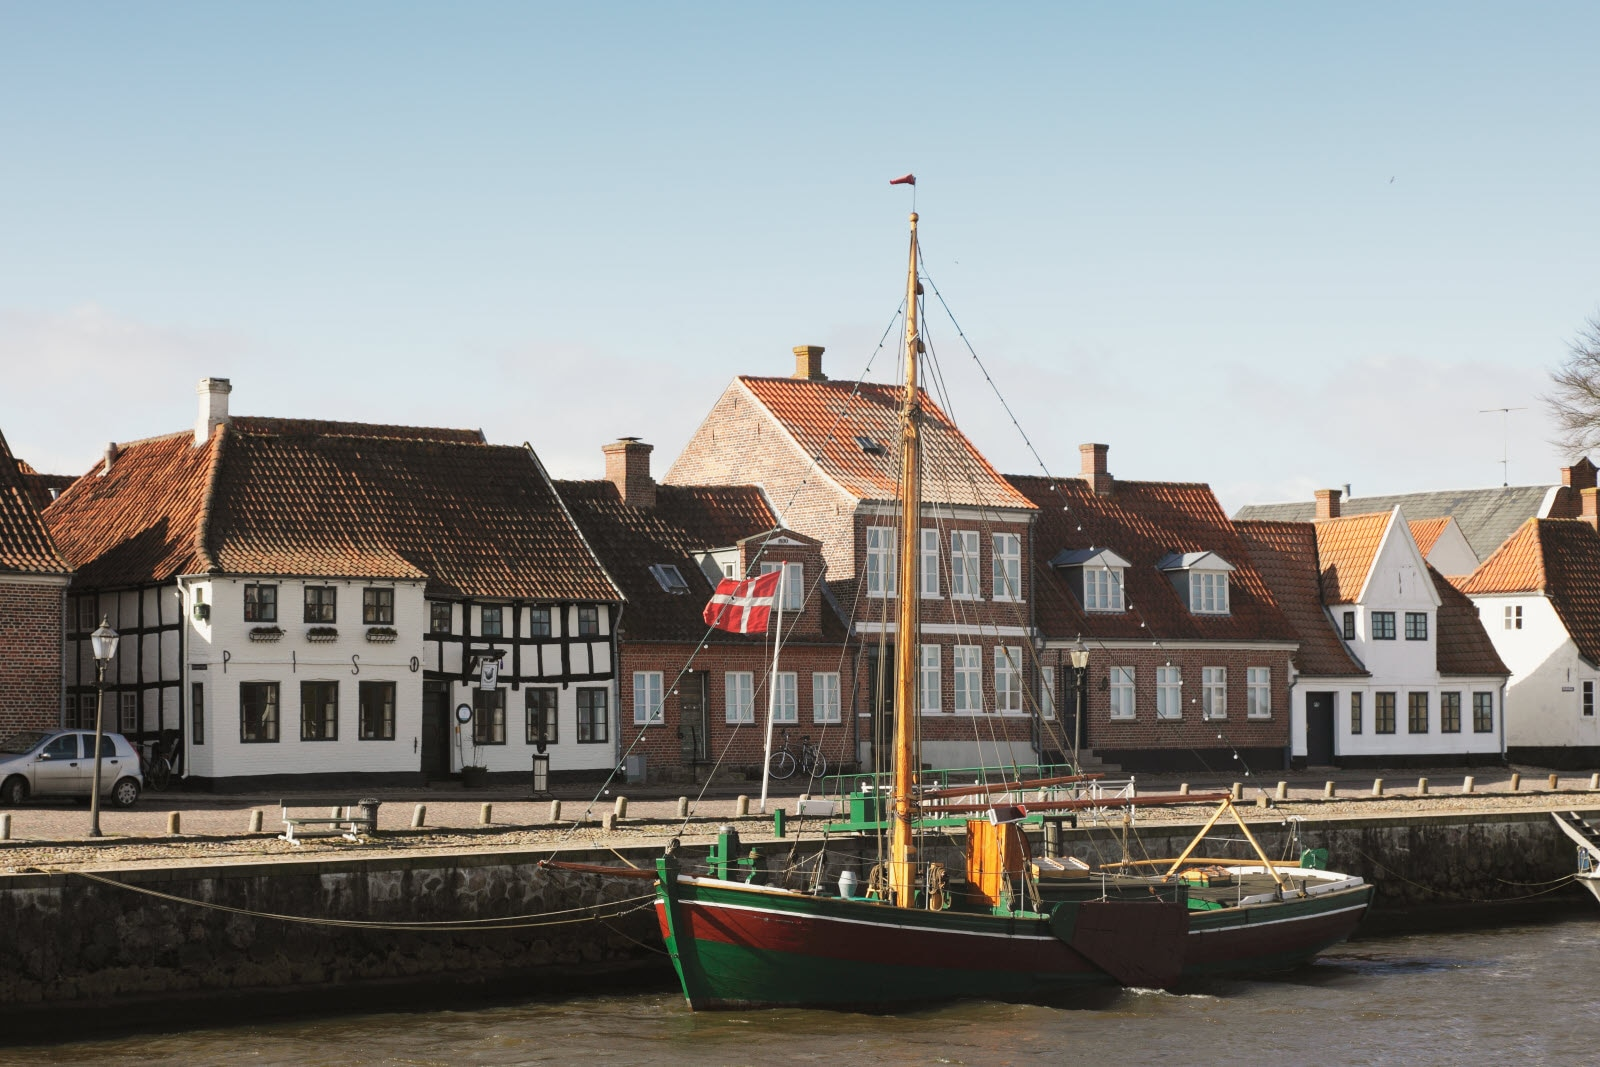 Old town in Esbjerg